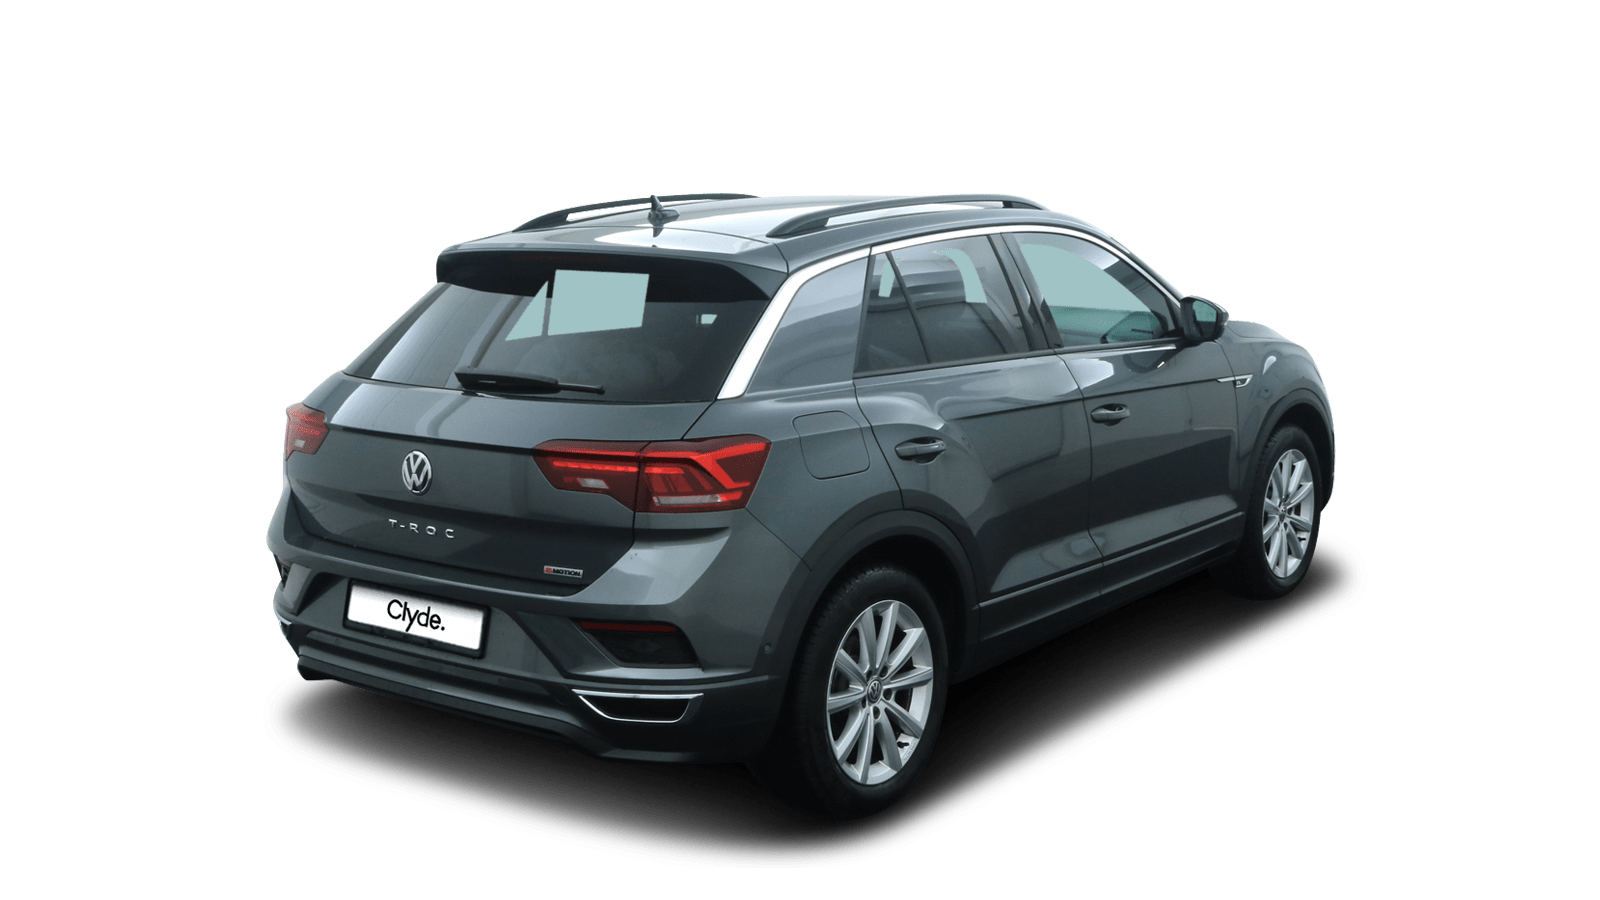 VW T-Roc Grey back - Clyde car subscription